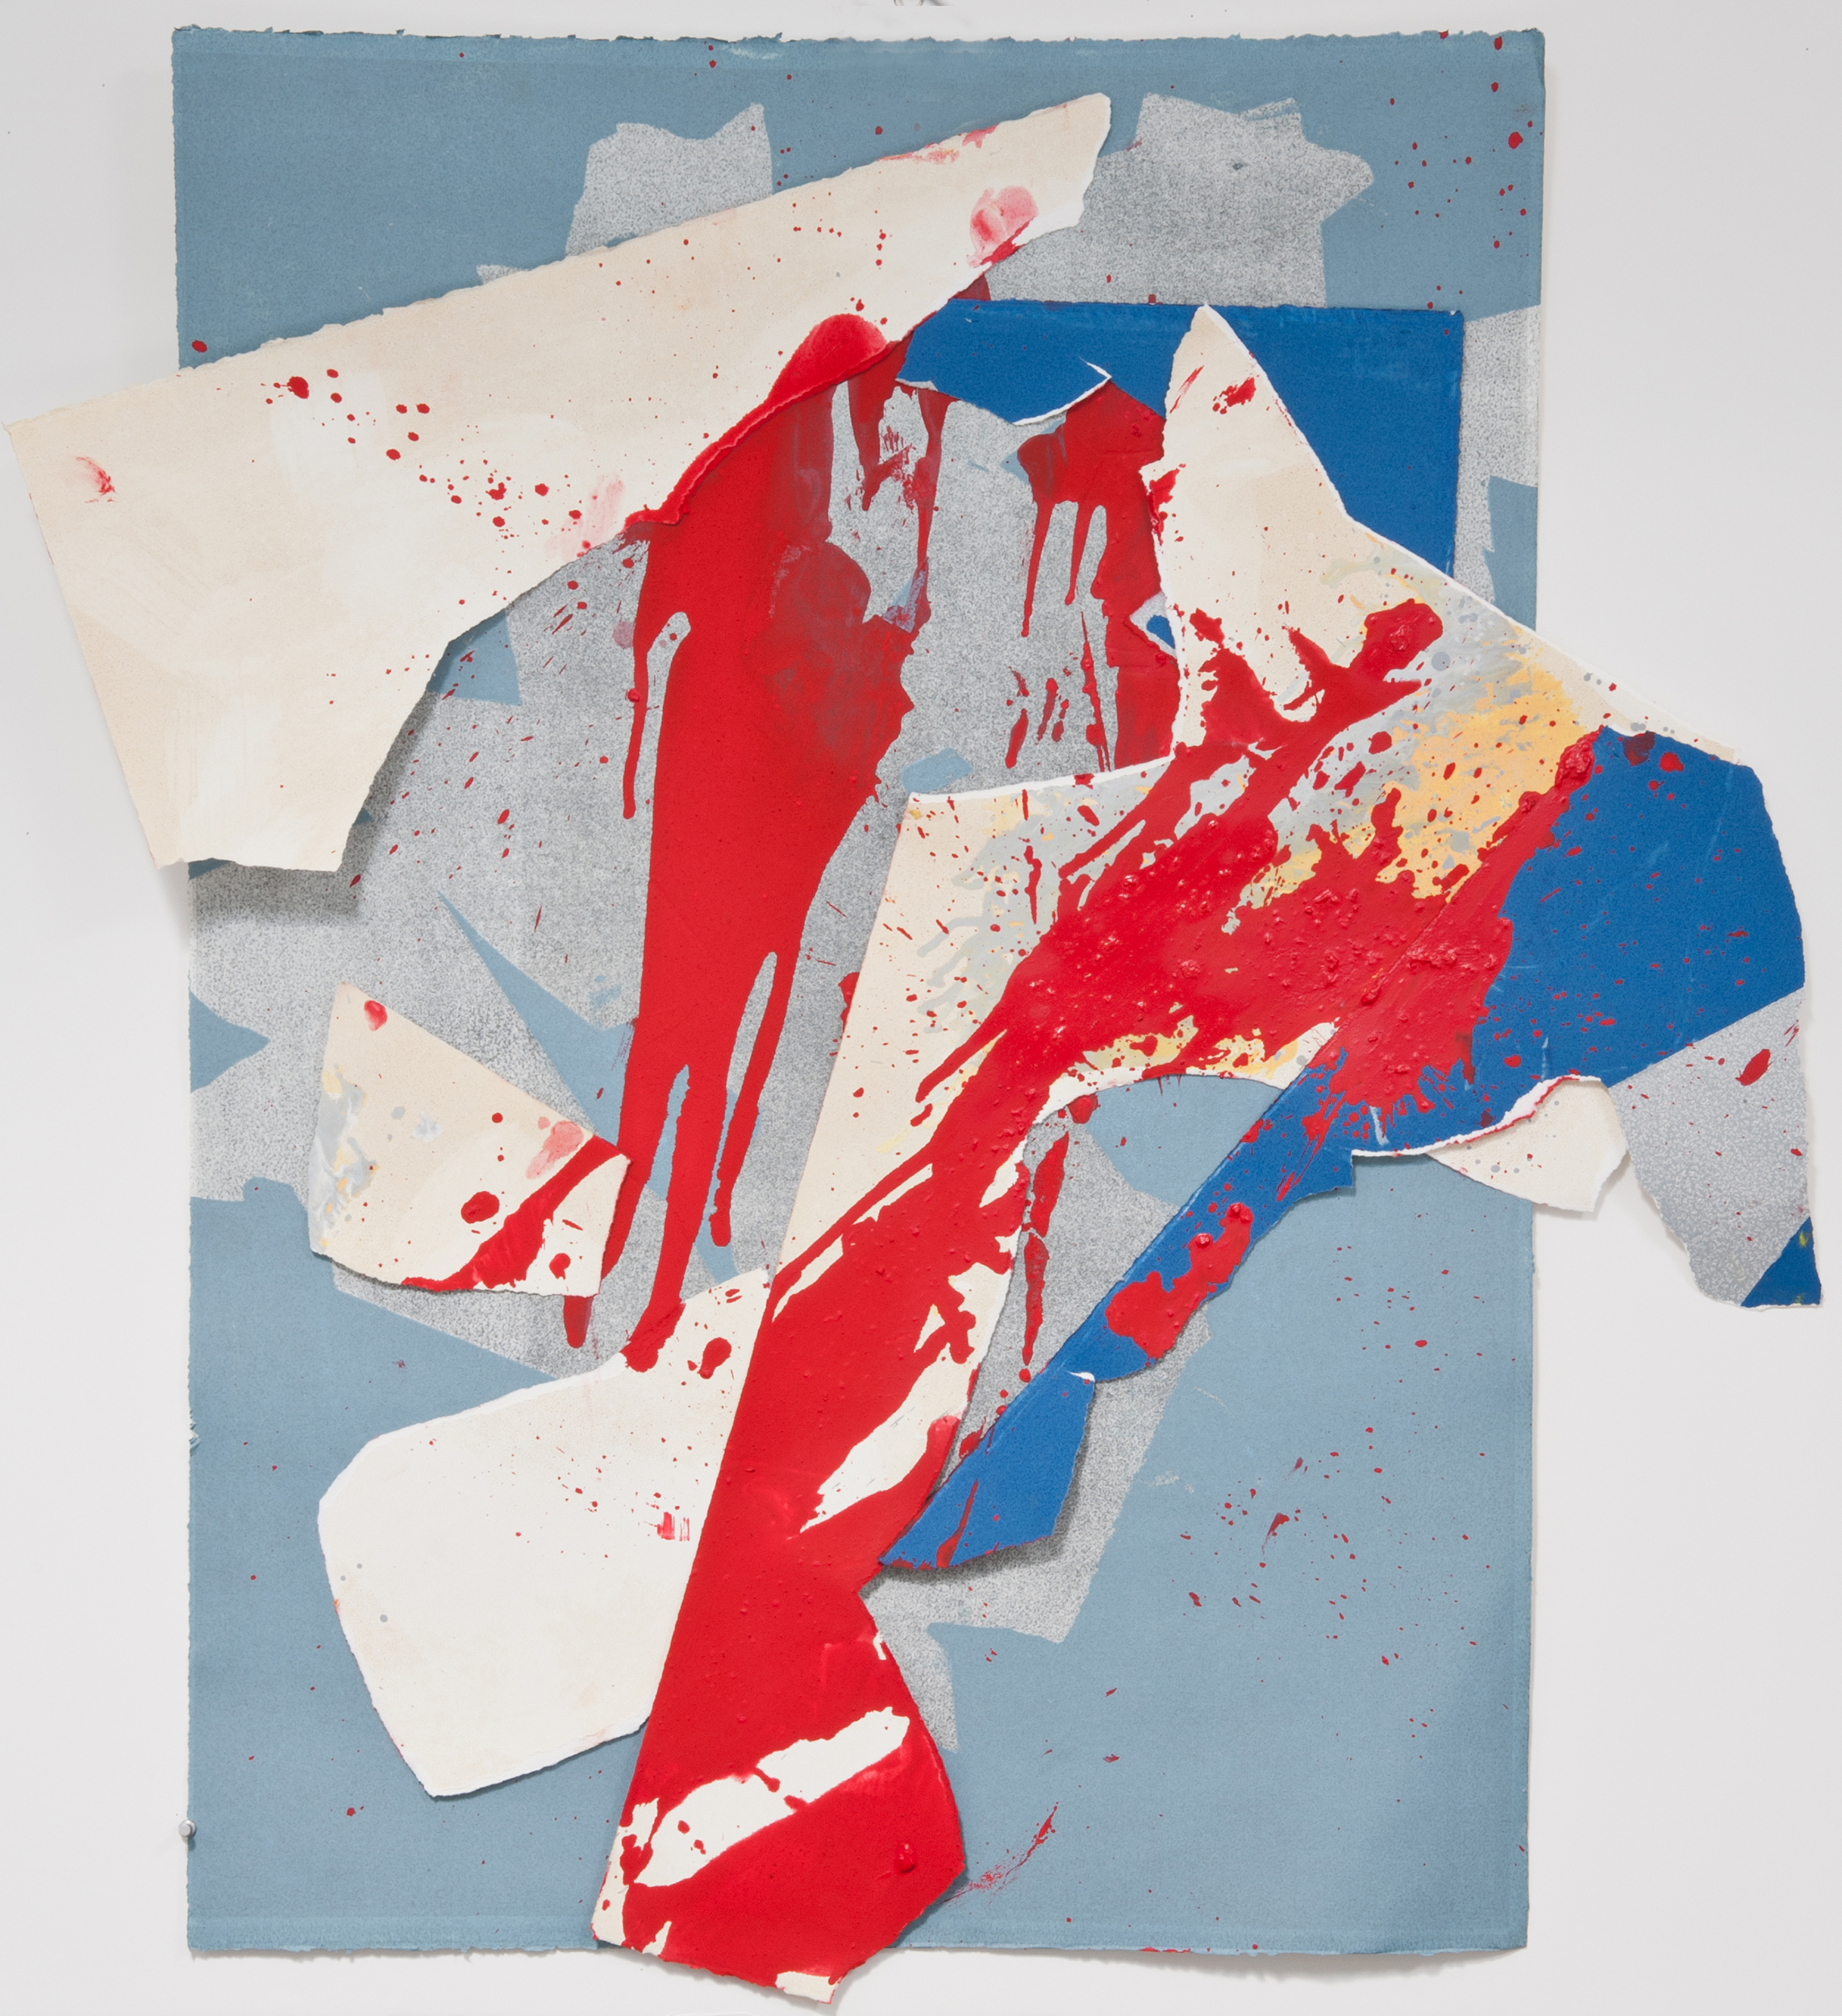 """Kay Harvey   """"About Ice Series 4"""" 2013. Collage, Oil on Paper. 45 x 40"""""""